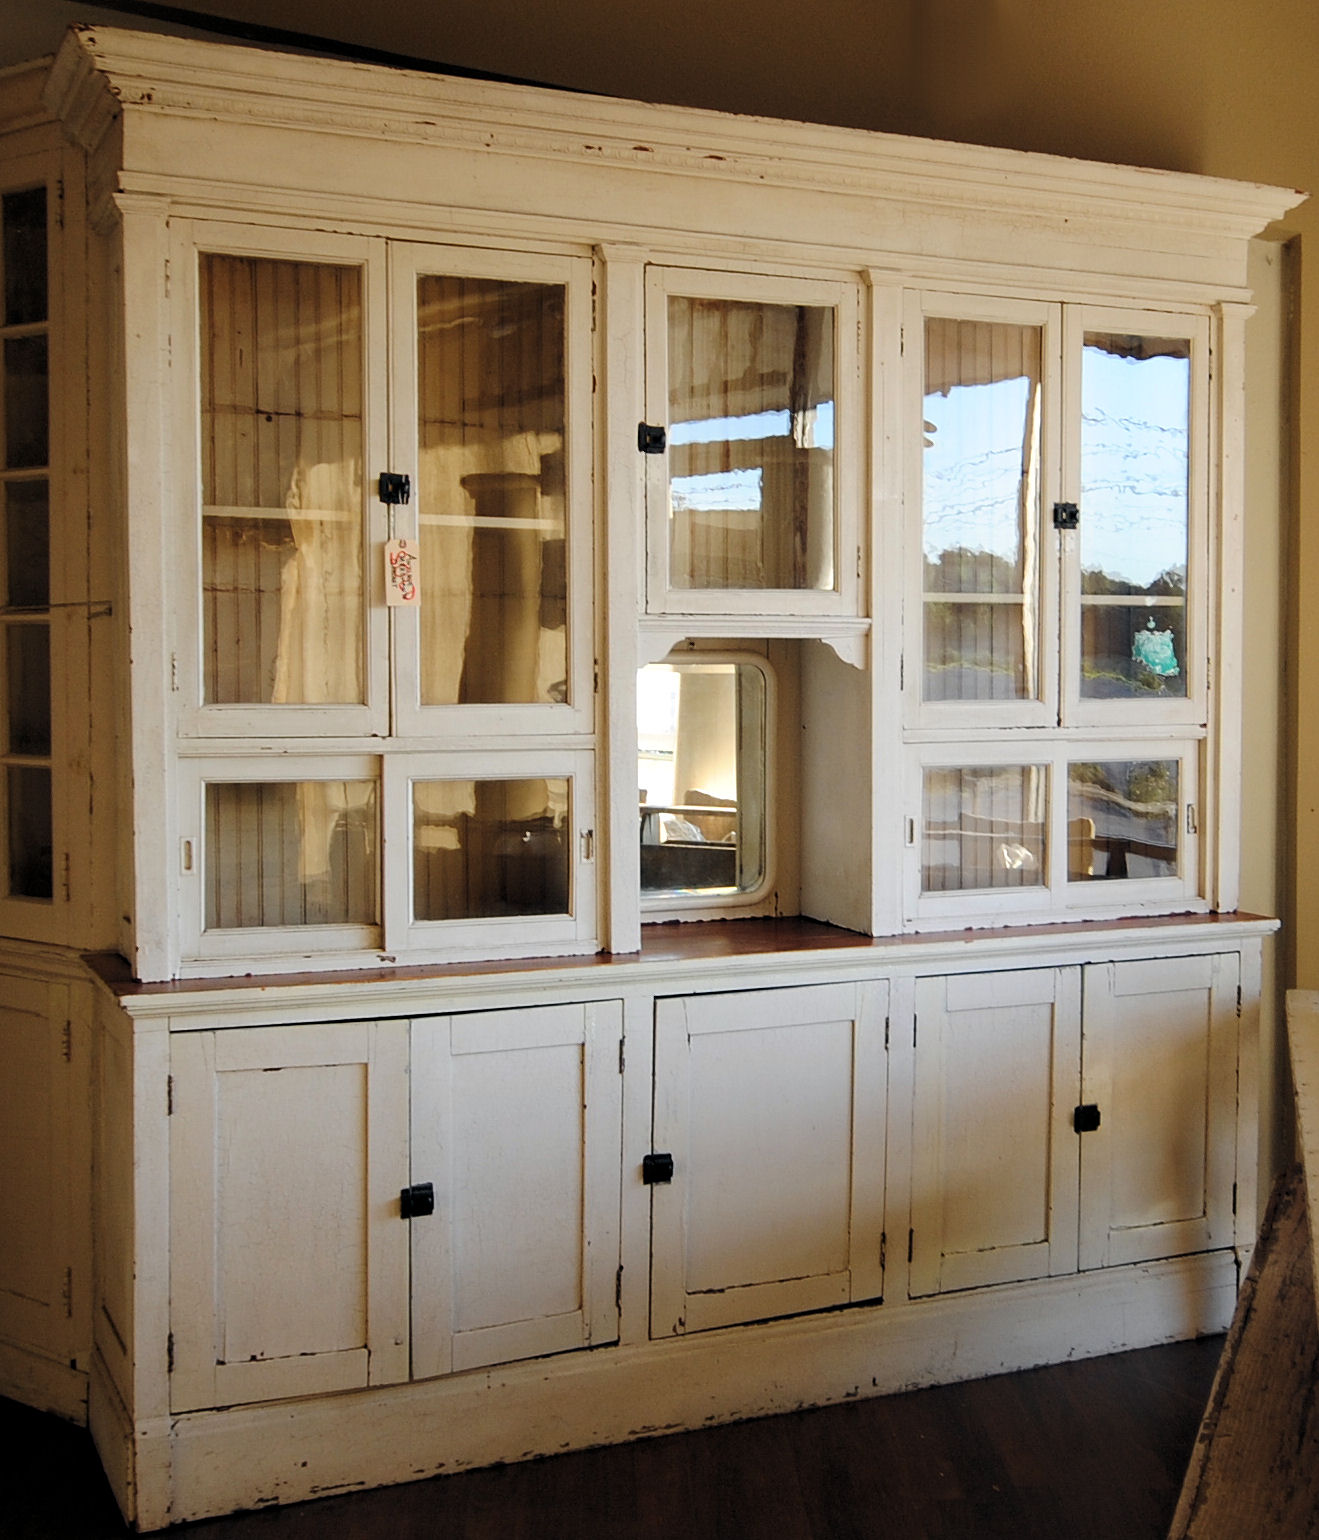 Farmhouse Kitchen Cabinets Design Jobs Laurieanna 39s Vintage Home Friday Maiden Post